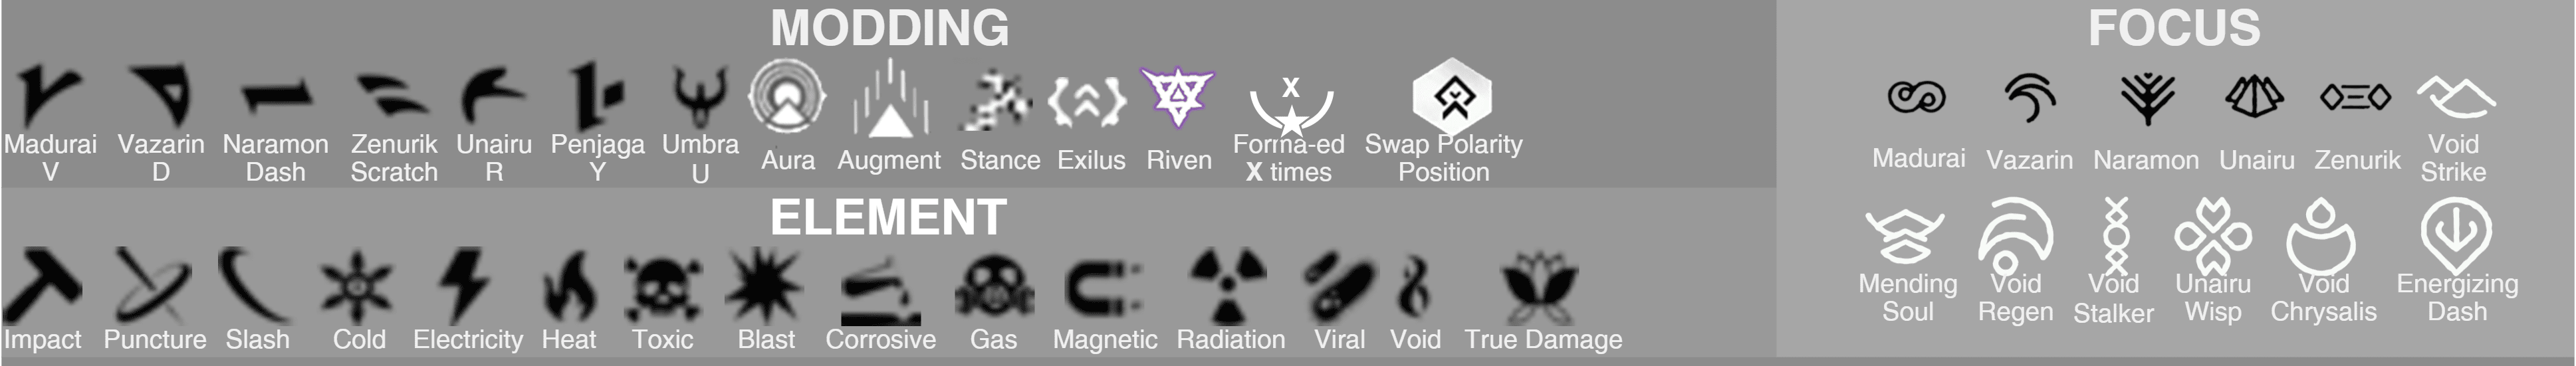 Warframe Mods, Focus and Elemental Icons